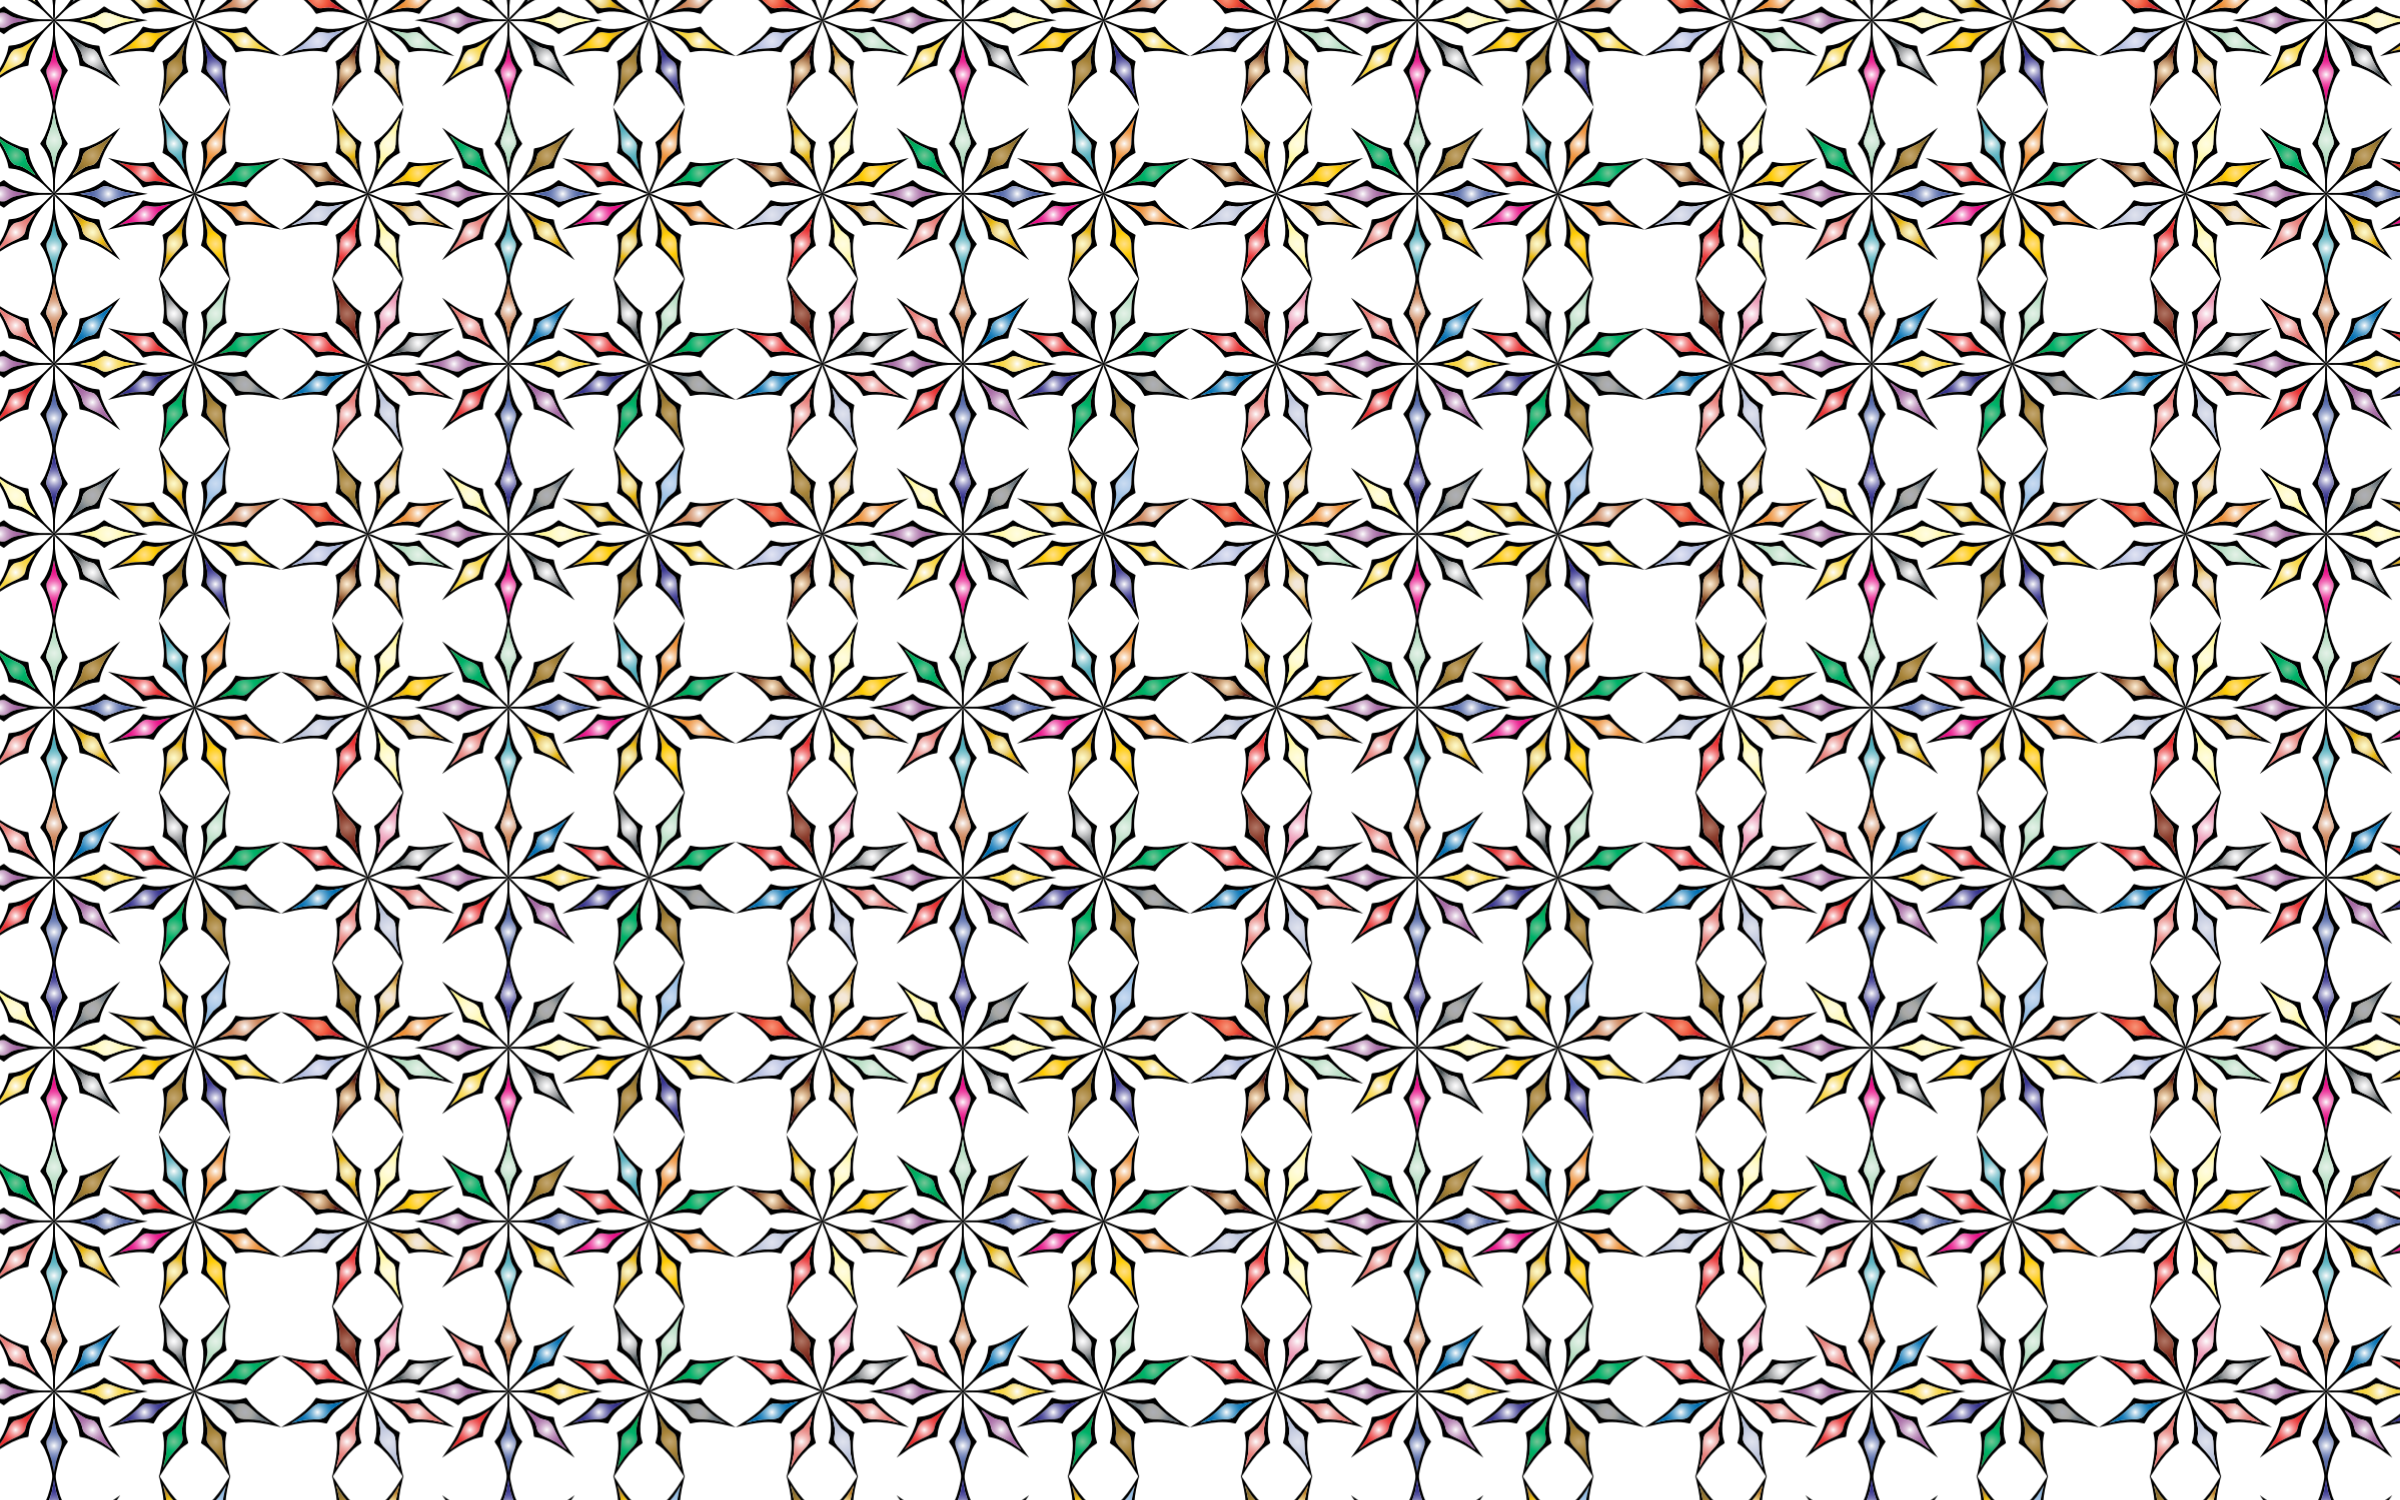 Seamless Chromatic Ornamental Divider Pattern 2 by GDJ